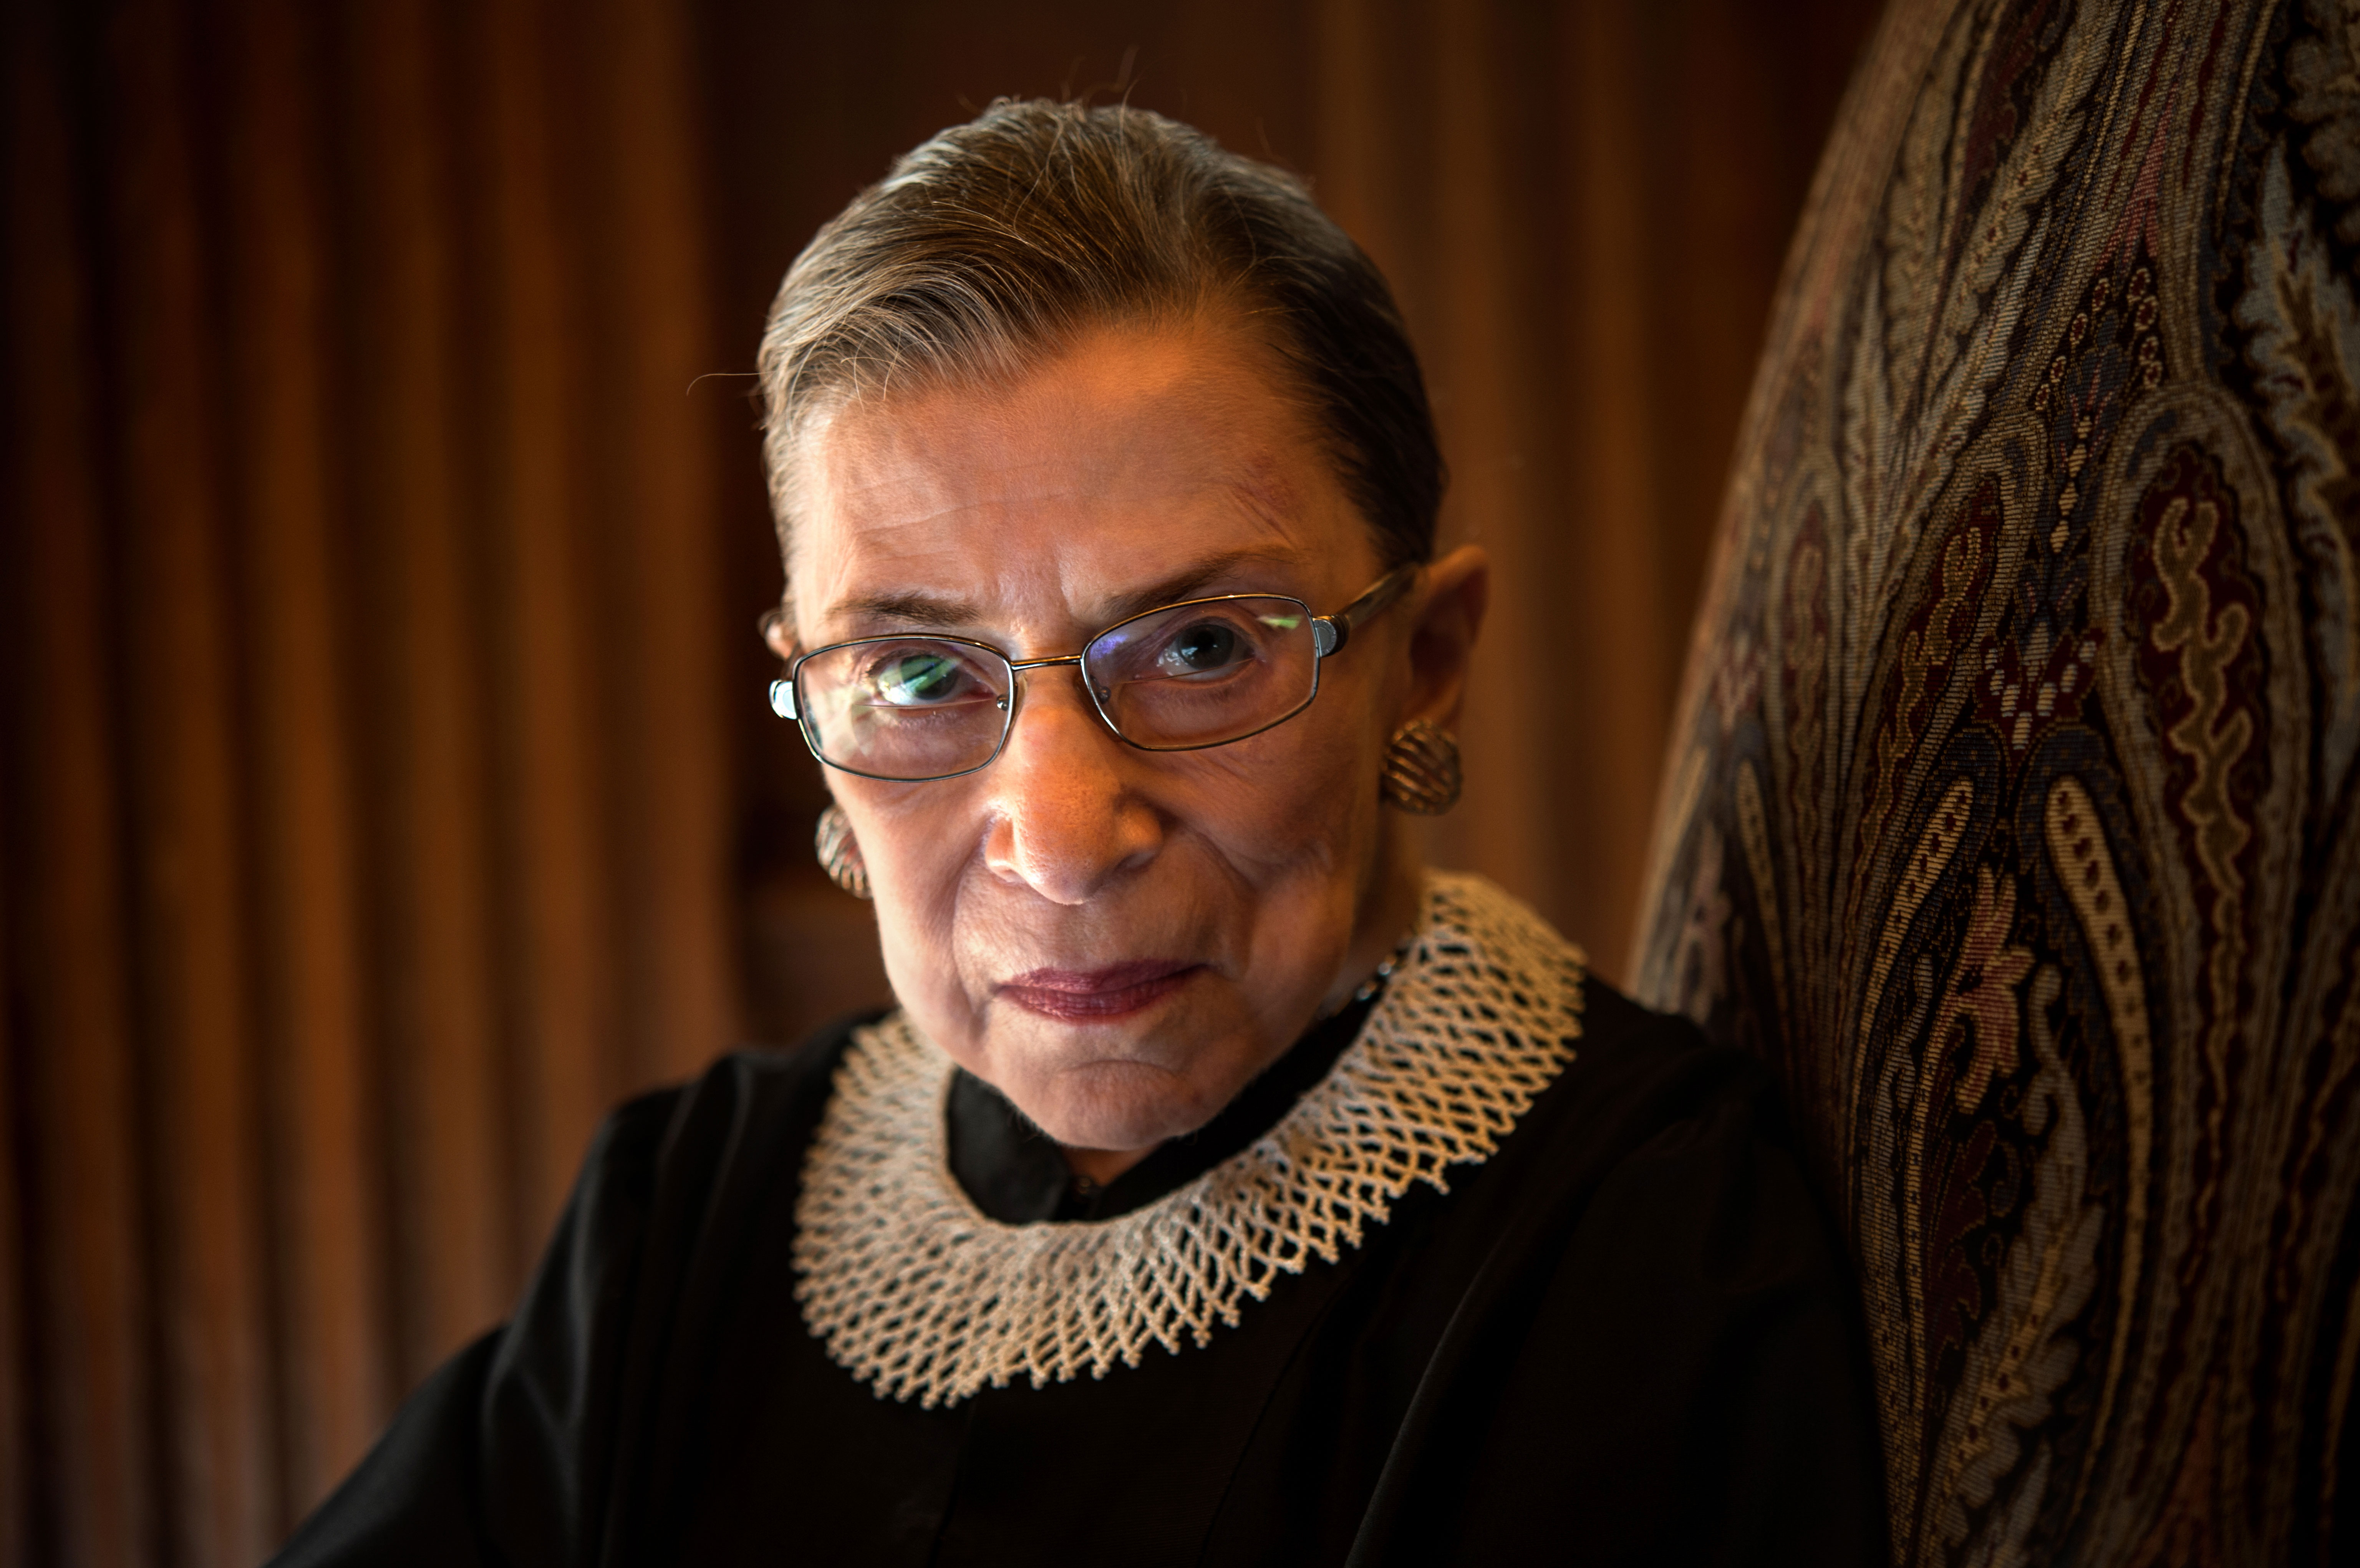 Justice Ruth Bader Ginsburg is photographed at the US Supreme Court in August 2013.